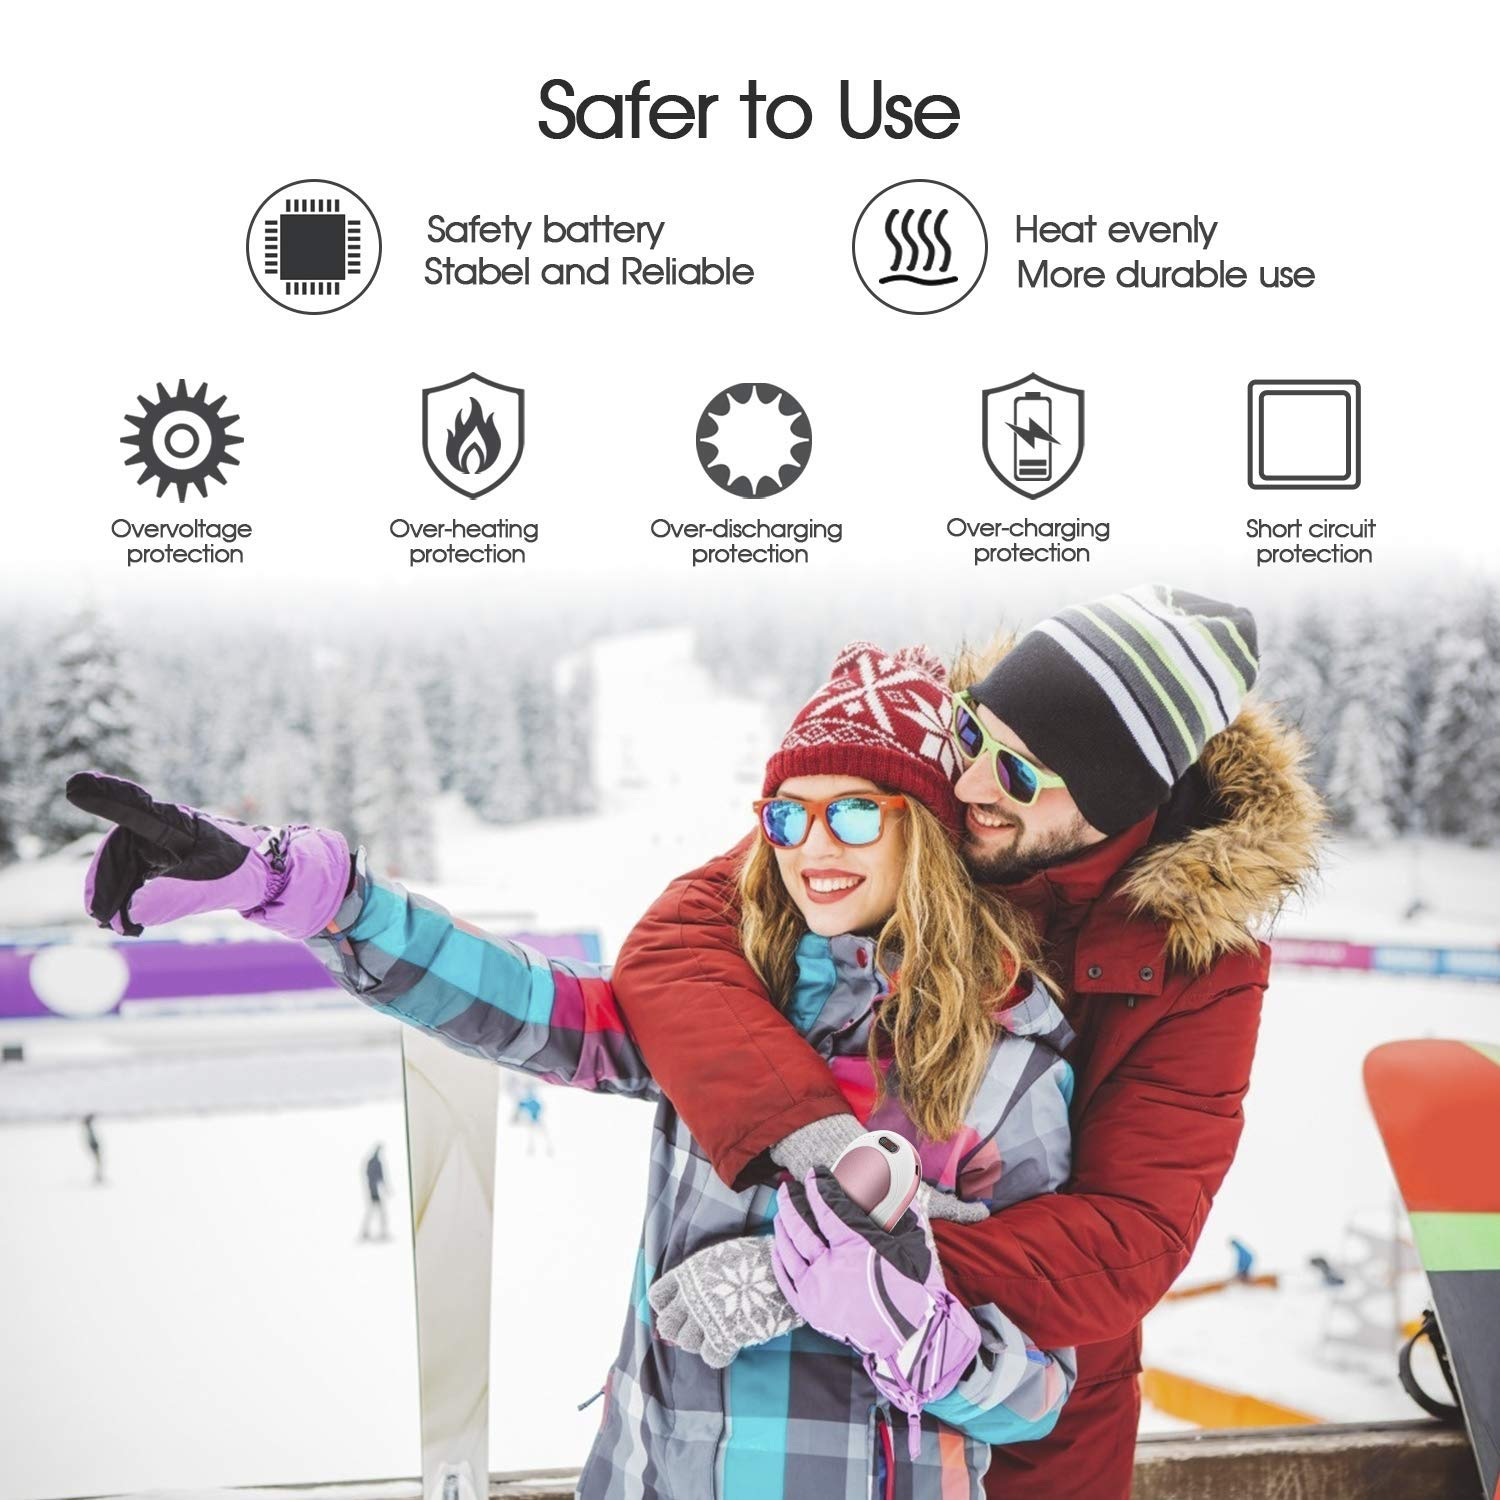 Electric Hand Warmer, 3 IN 1 USB Rechargeable Hand Warmer 6000mAh Power Bank Hand Warmer with Vibration Massage, LED Flashlight and Visible LCD Play, Great for Outdoor Sport, Winter Gifts- Rose Gold